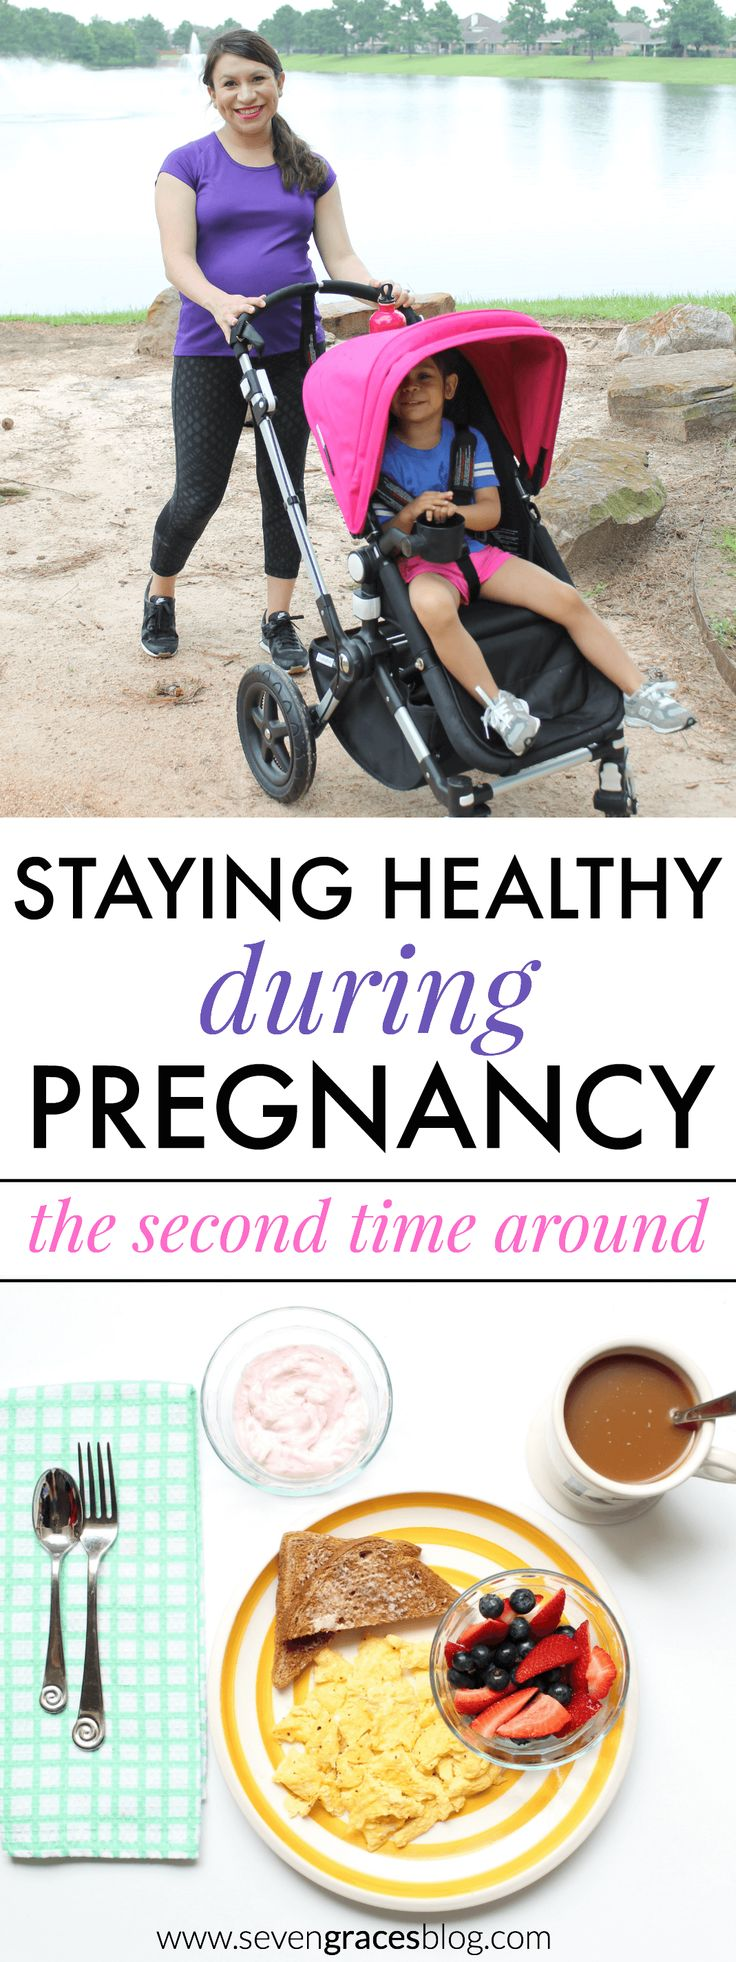 Staying Healthy During Pregnancy: the second time around. How one mom stays fit using basic health tips to navigate her pregnancy journey. #foodsciencematters #Pmedia #ad